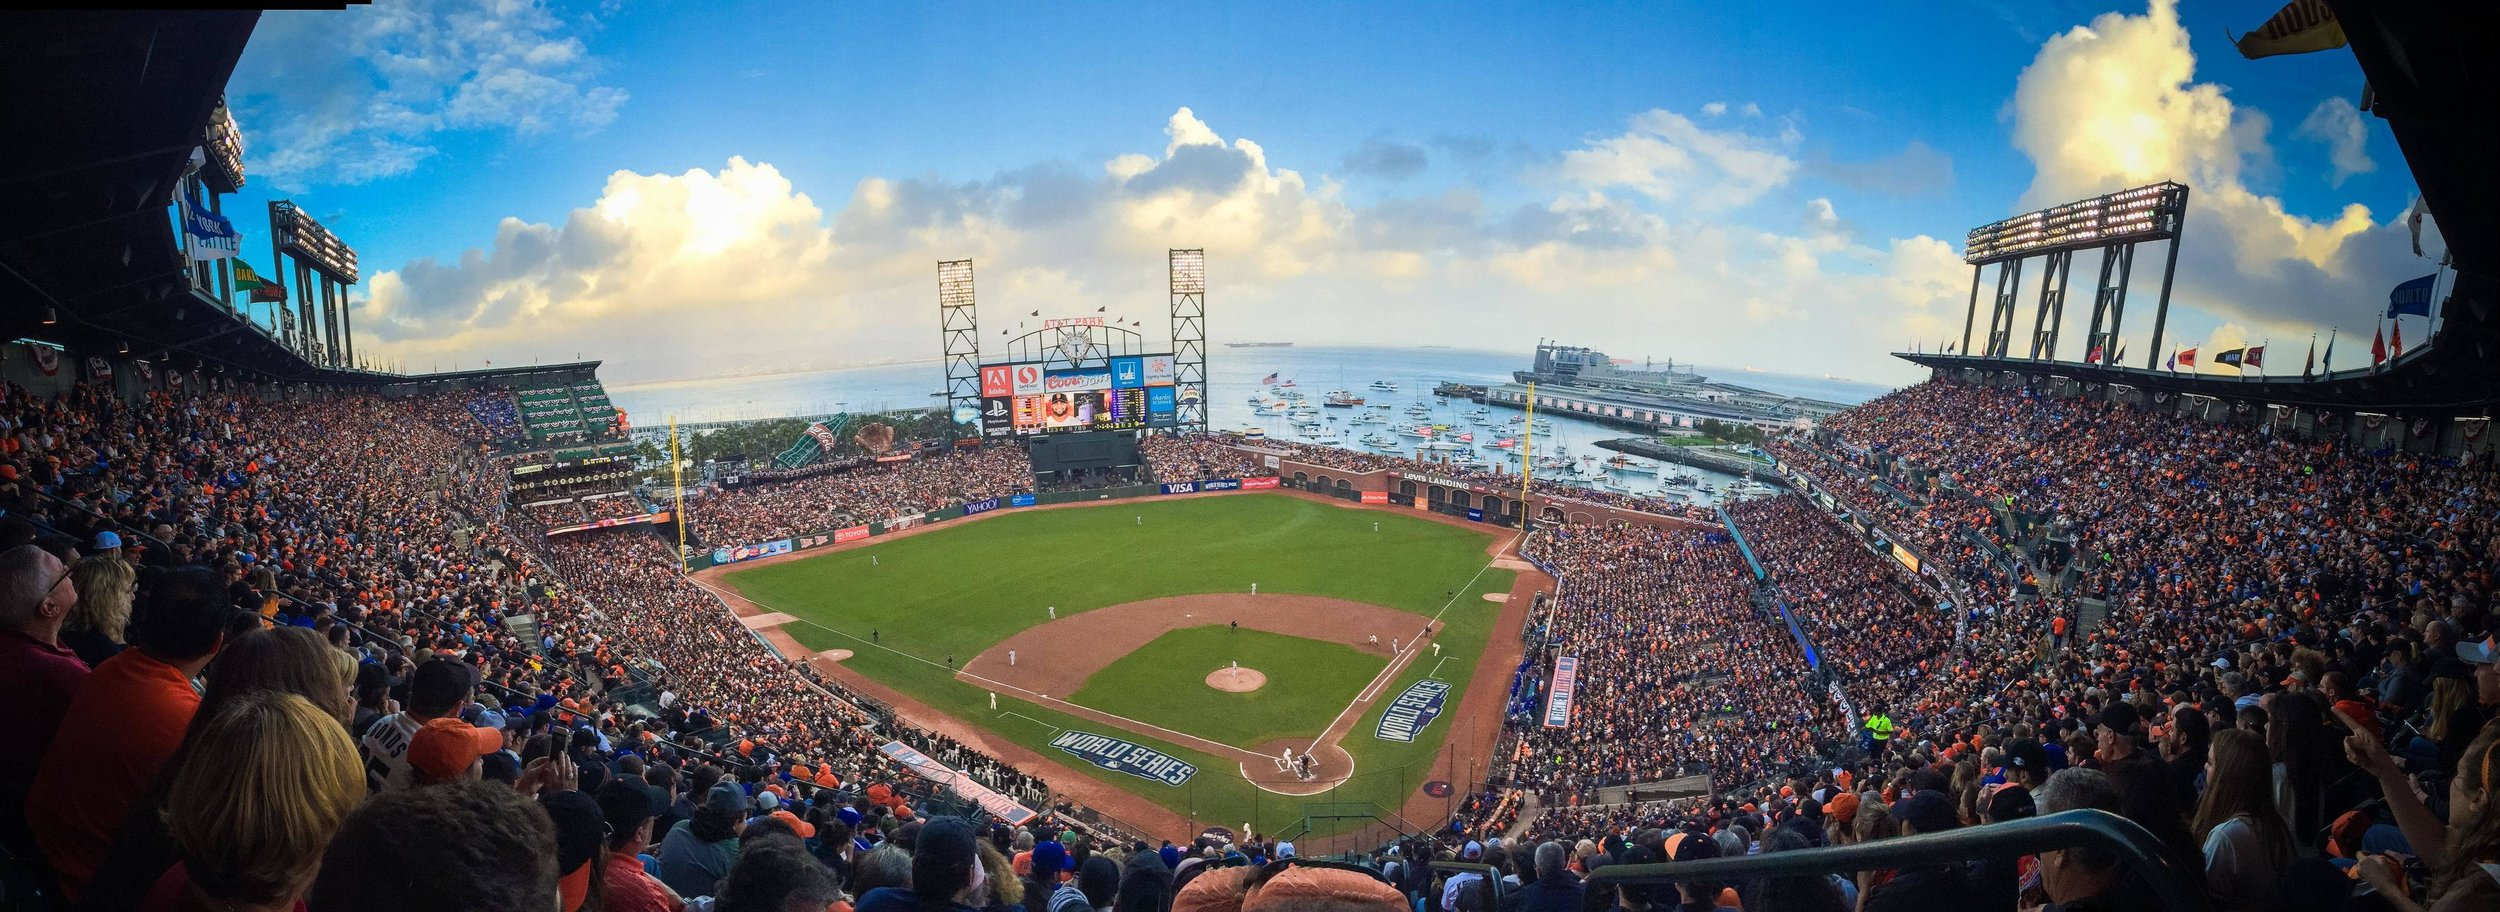 AT&T Park   Unfortunately, the Giants are out of town the weekend of our wedding (however, if you're here on Monday-Wednesday, you can catch a game). But you can still walk by and enjoy the waterfront at AT&T Park, home of the 2010, 2012, and 2014 World Series champion San Francisco Giants!   More Info on AT&T Park Here